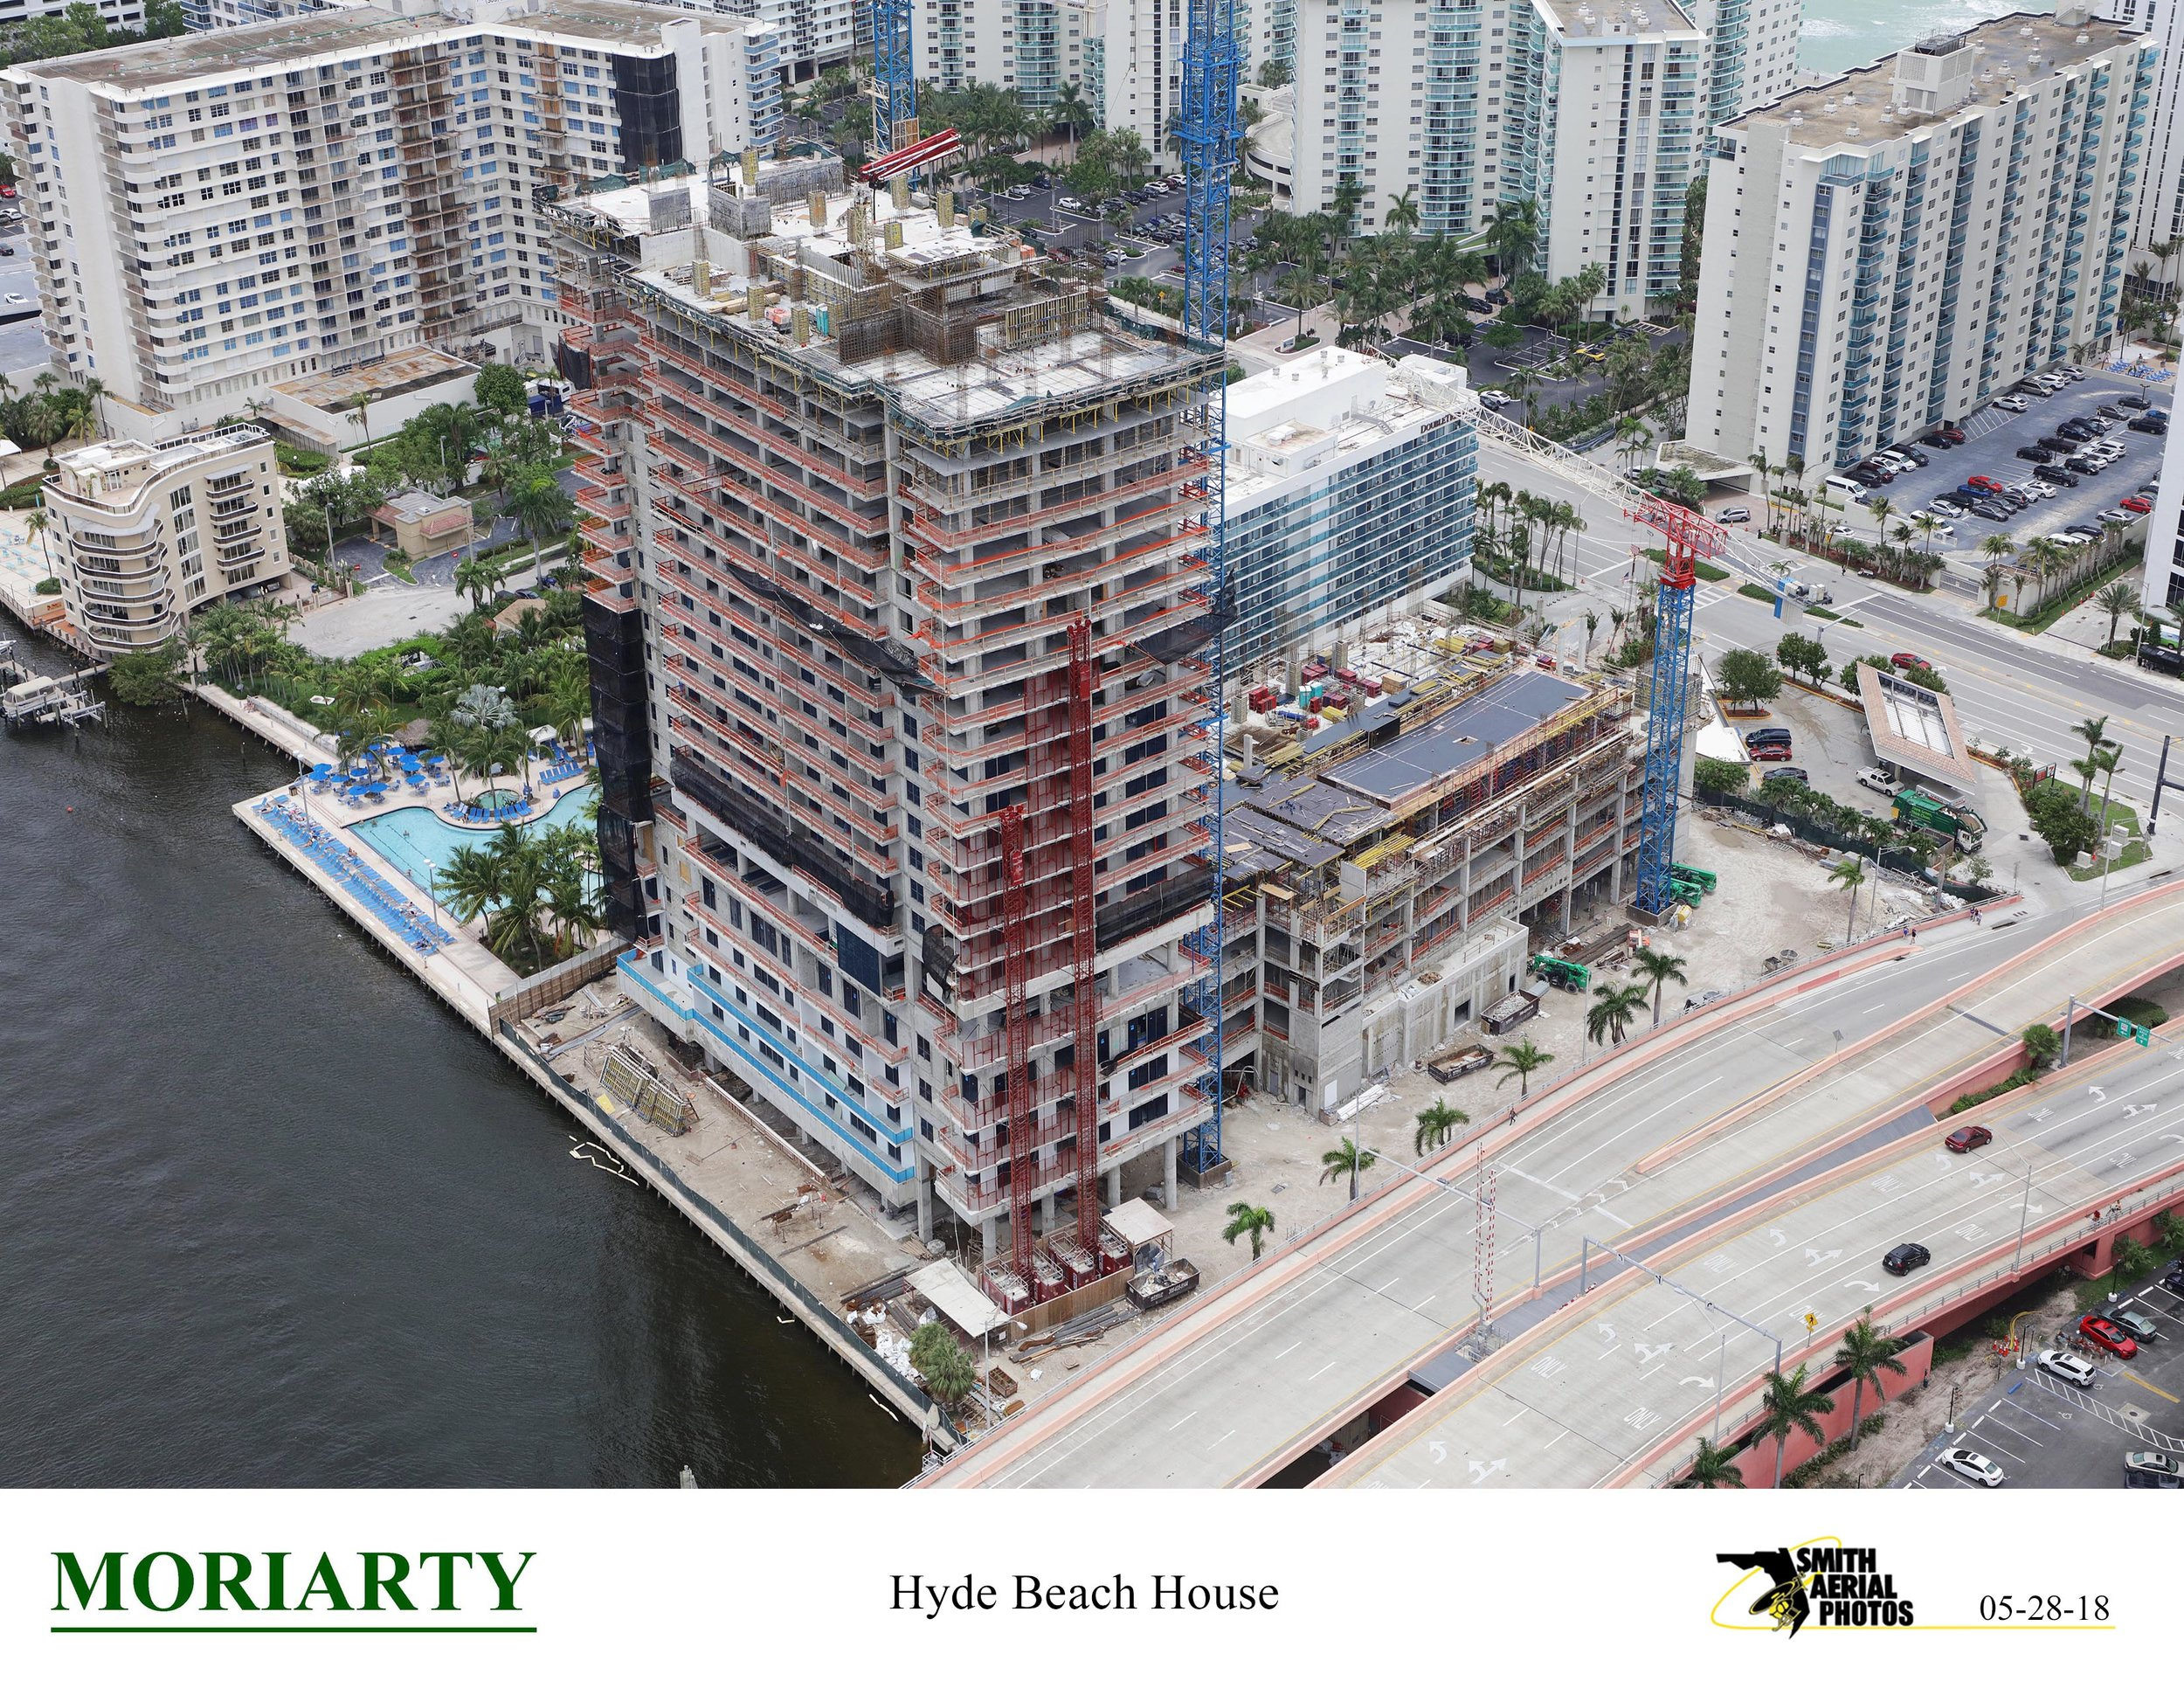 Related Group & sbe Announces Construction At 85% Sold Hyde Beach House Passes Halfway